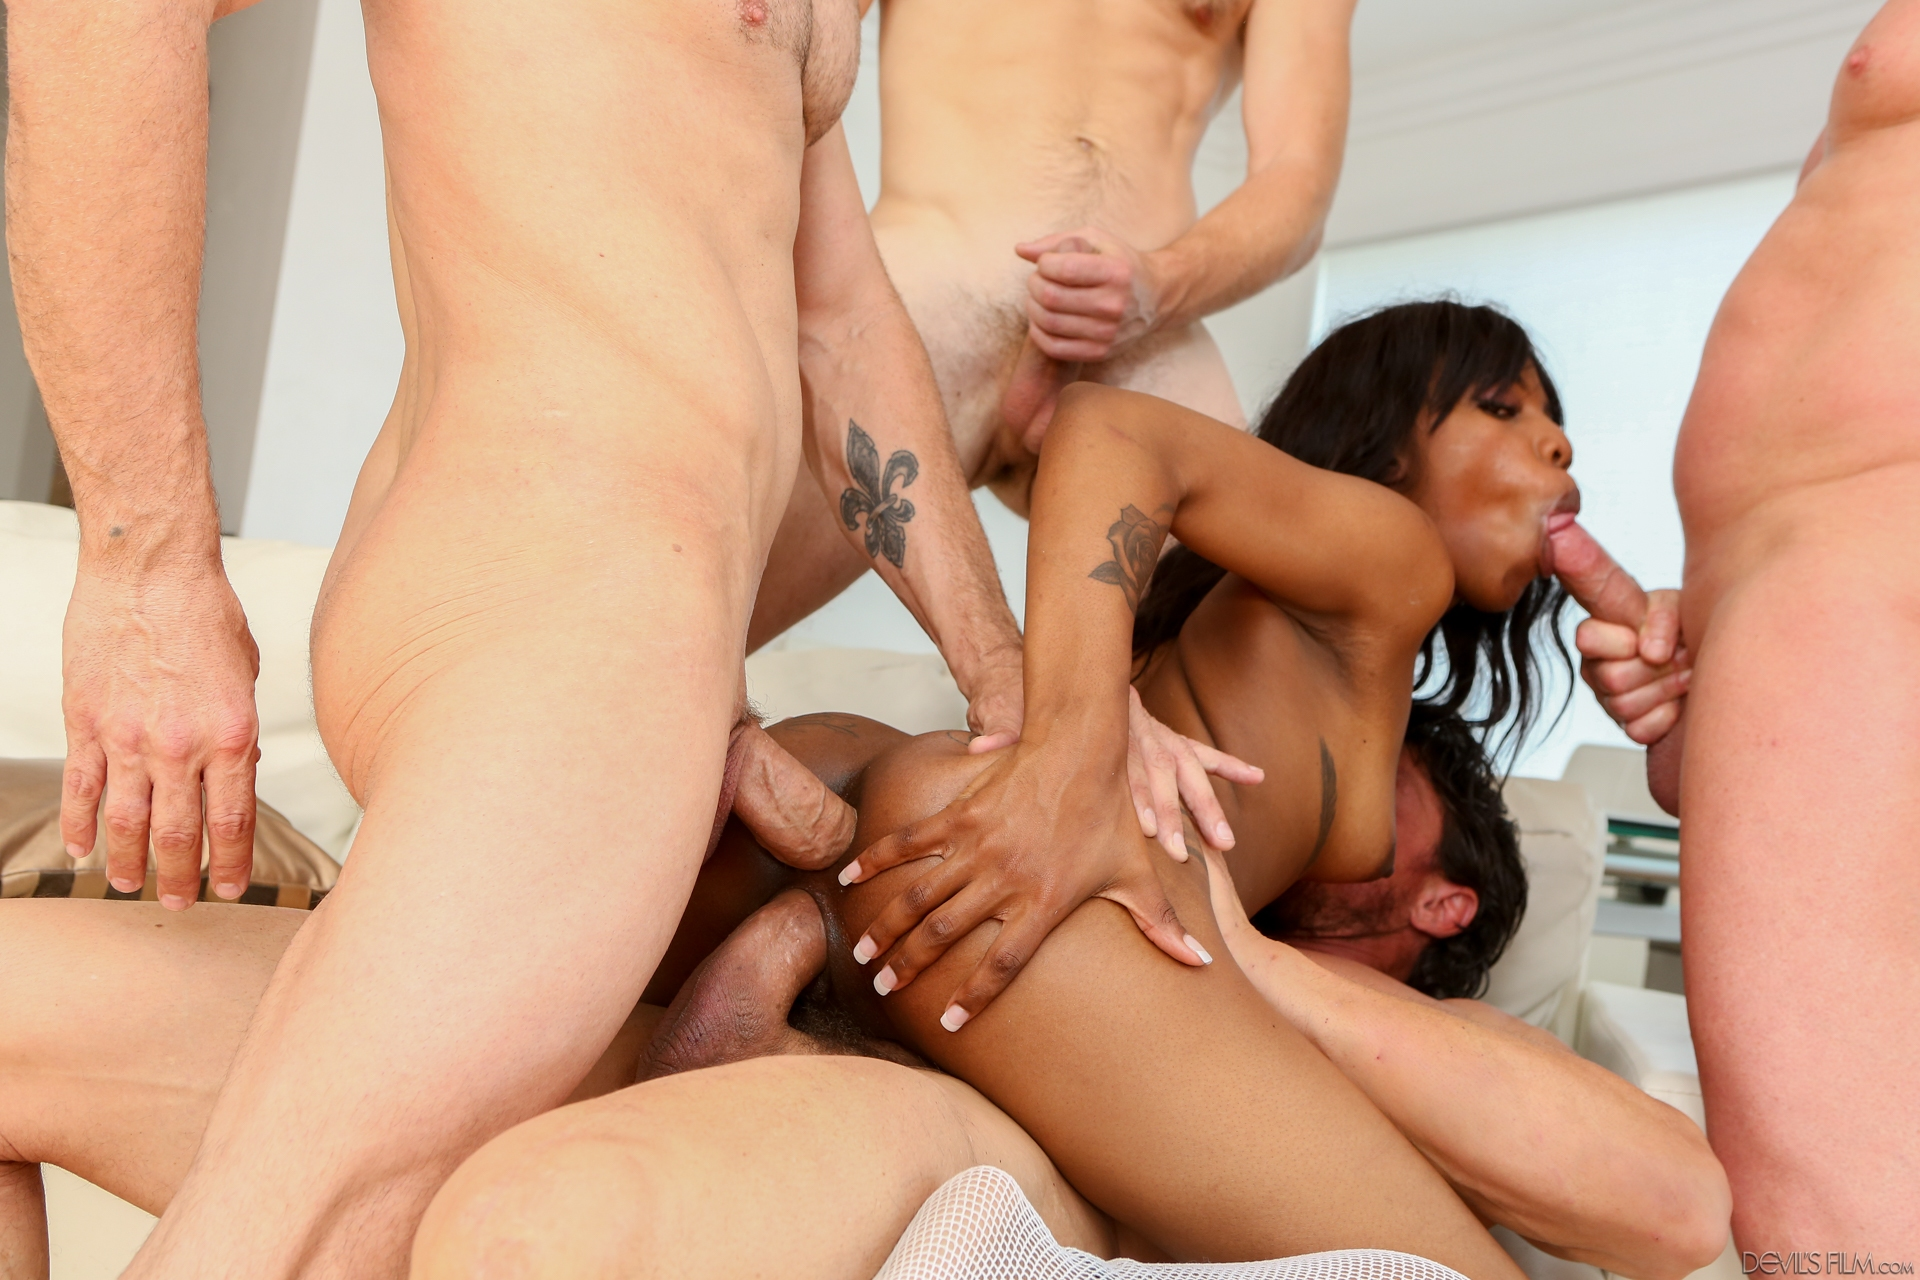 Black Girl White Guy  Most Sexy Porn  Free Hd  4K Photos-2010